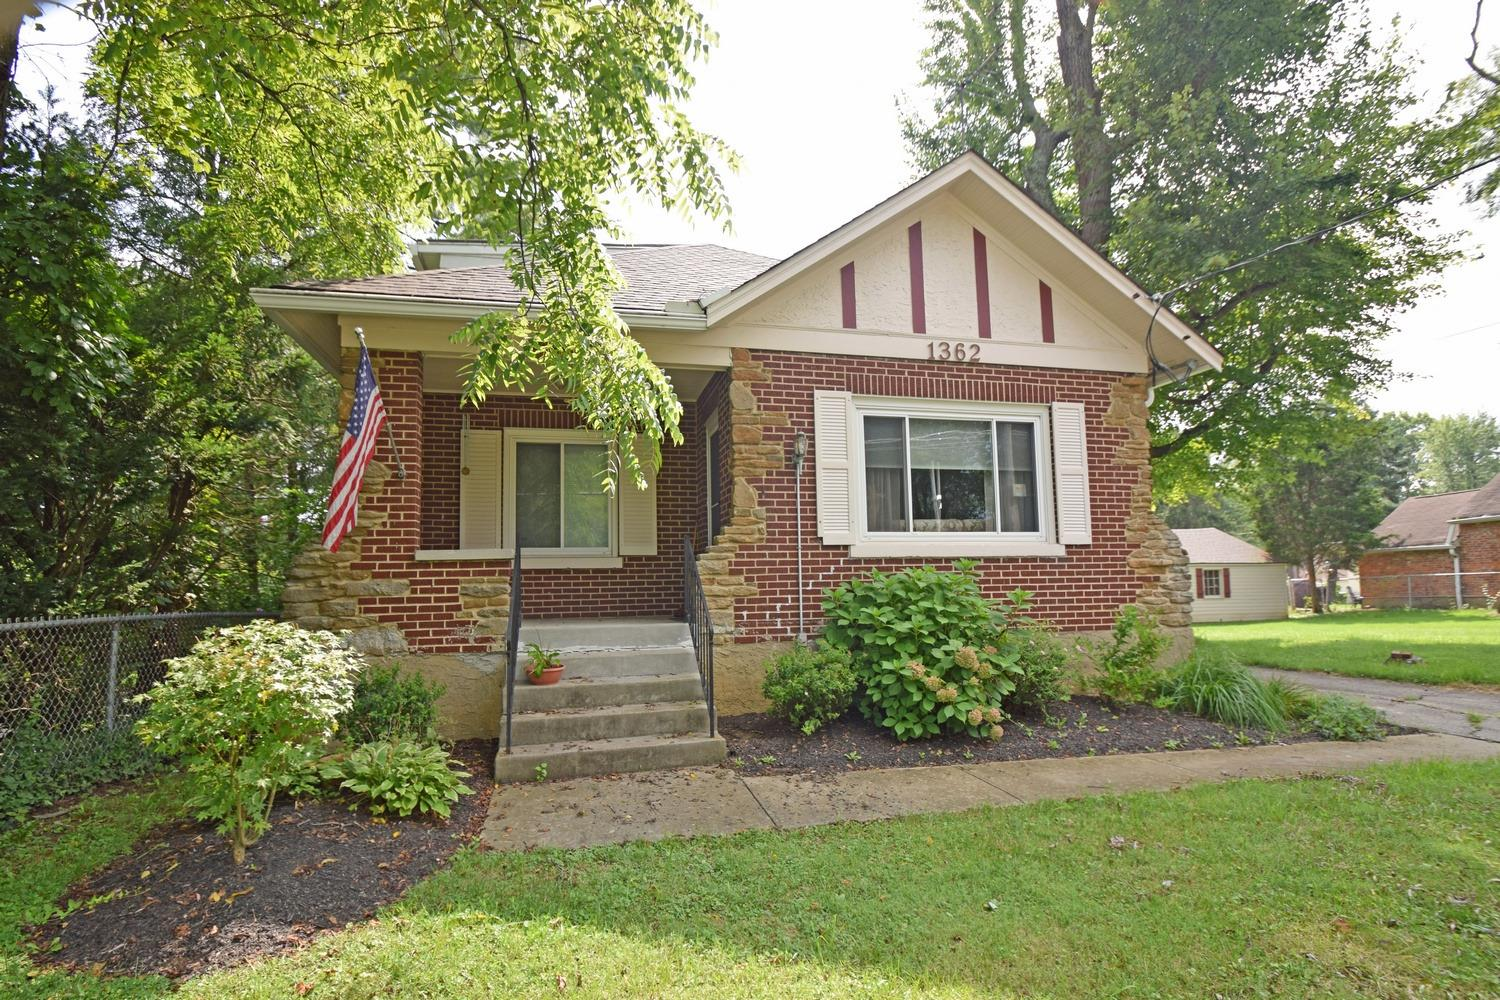 1362 Wolfangel Rd Anderson Twp Oh 45255 Listing Details